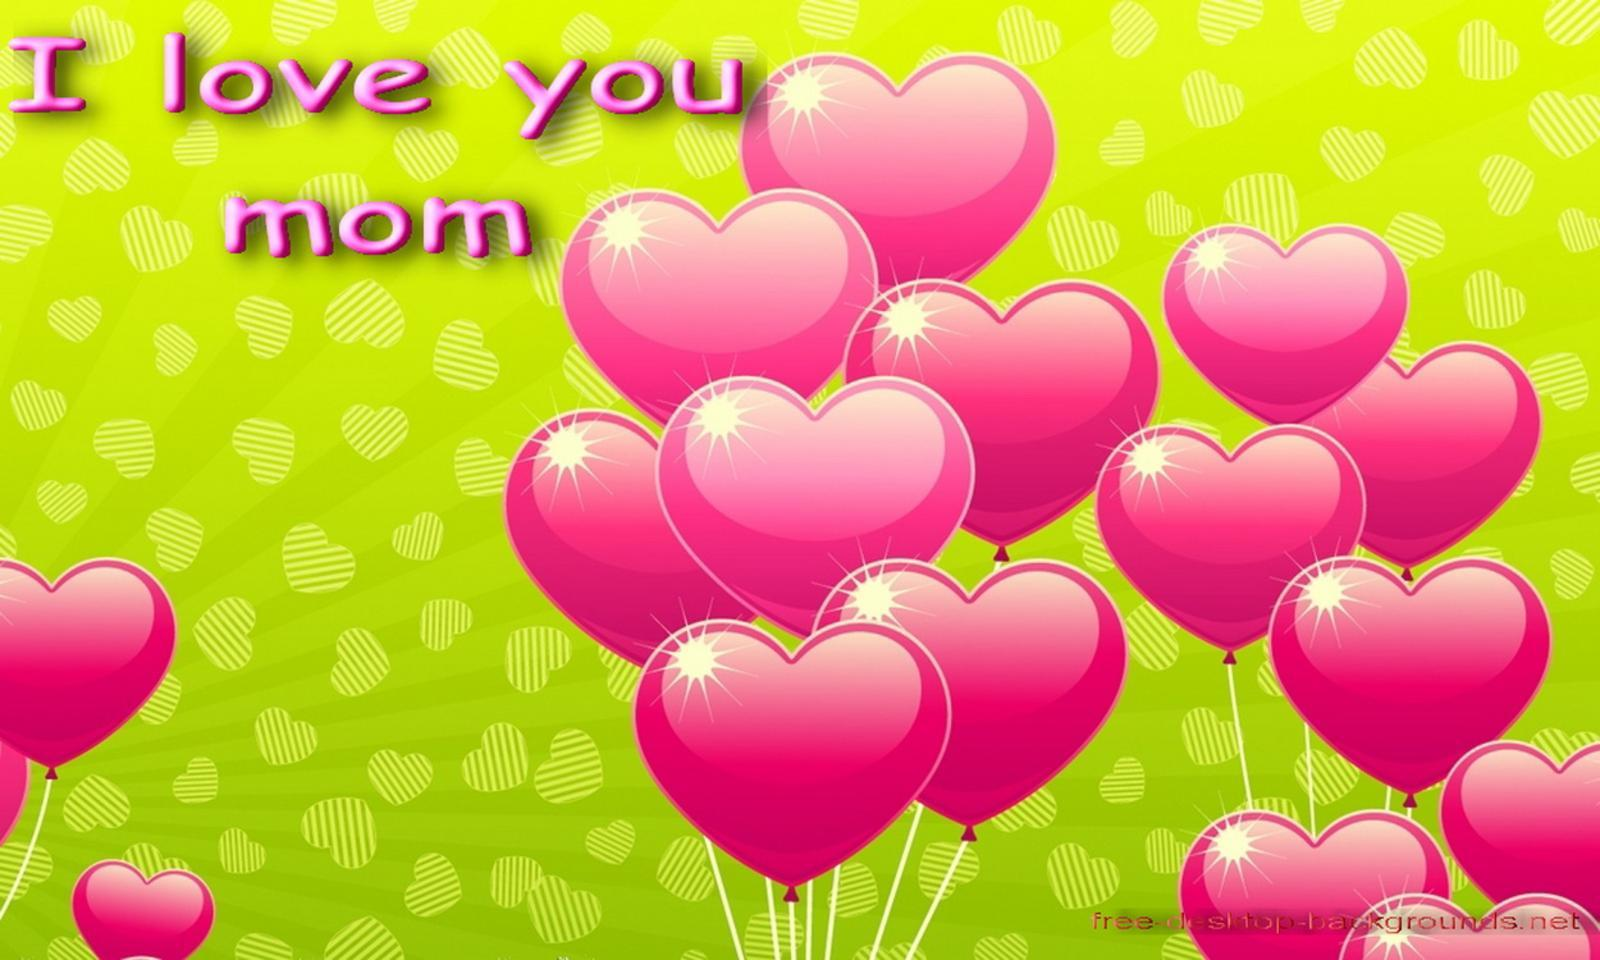 hd widescreen images collection of i love you mom: natalio dubois